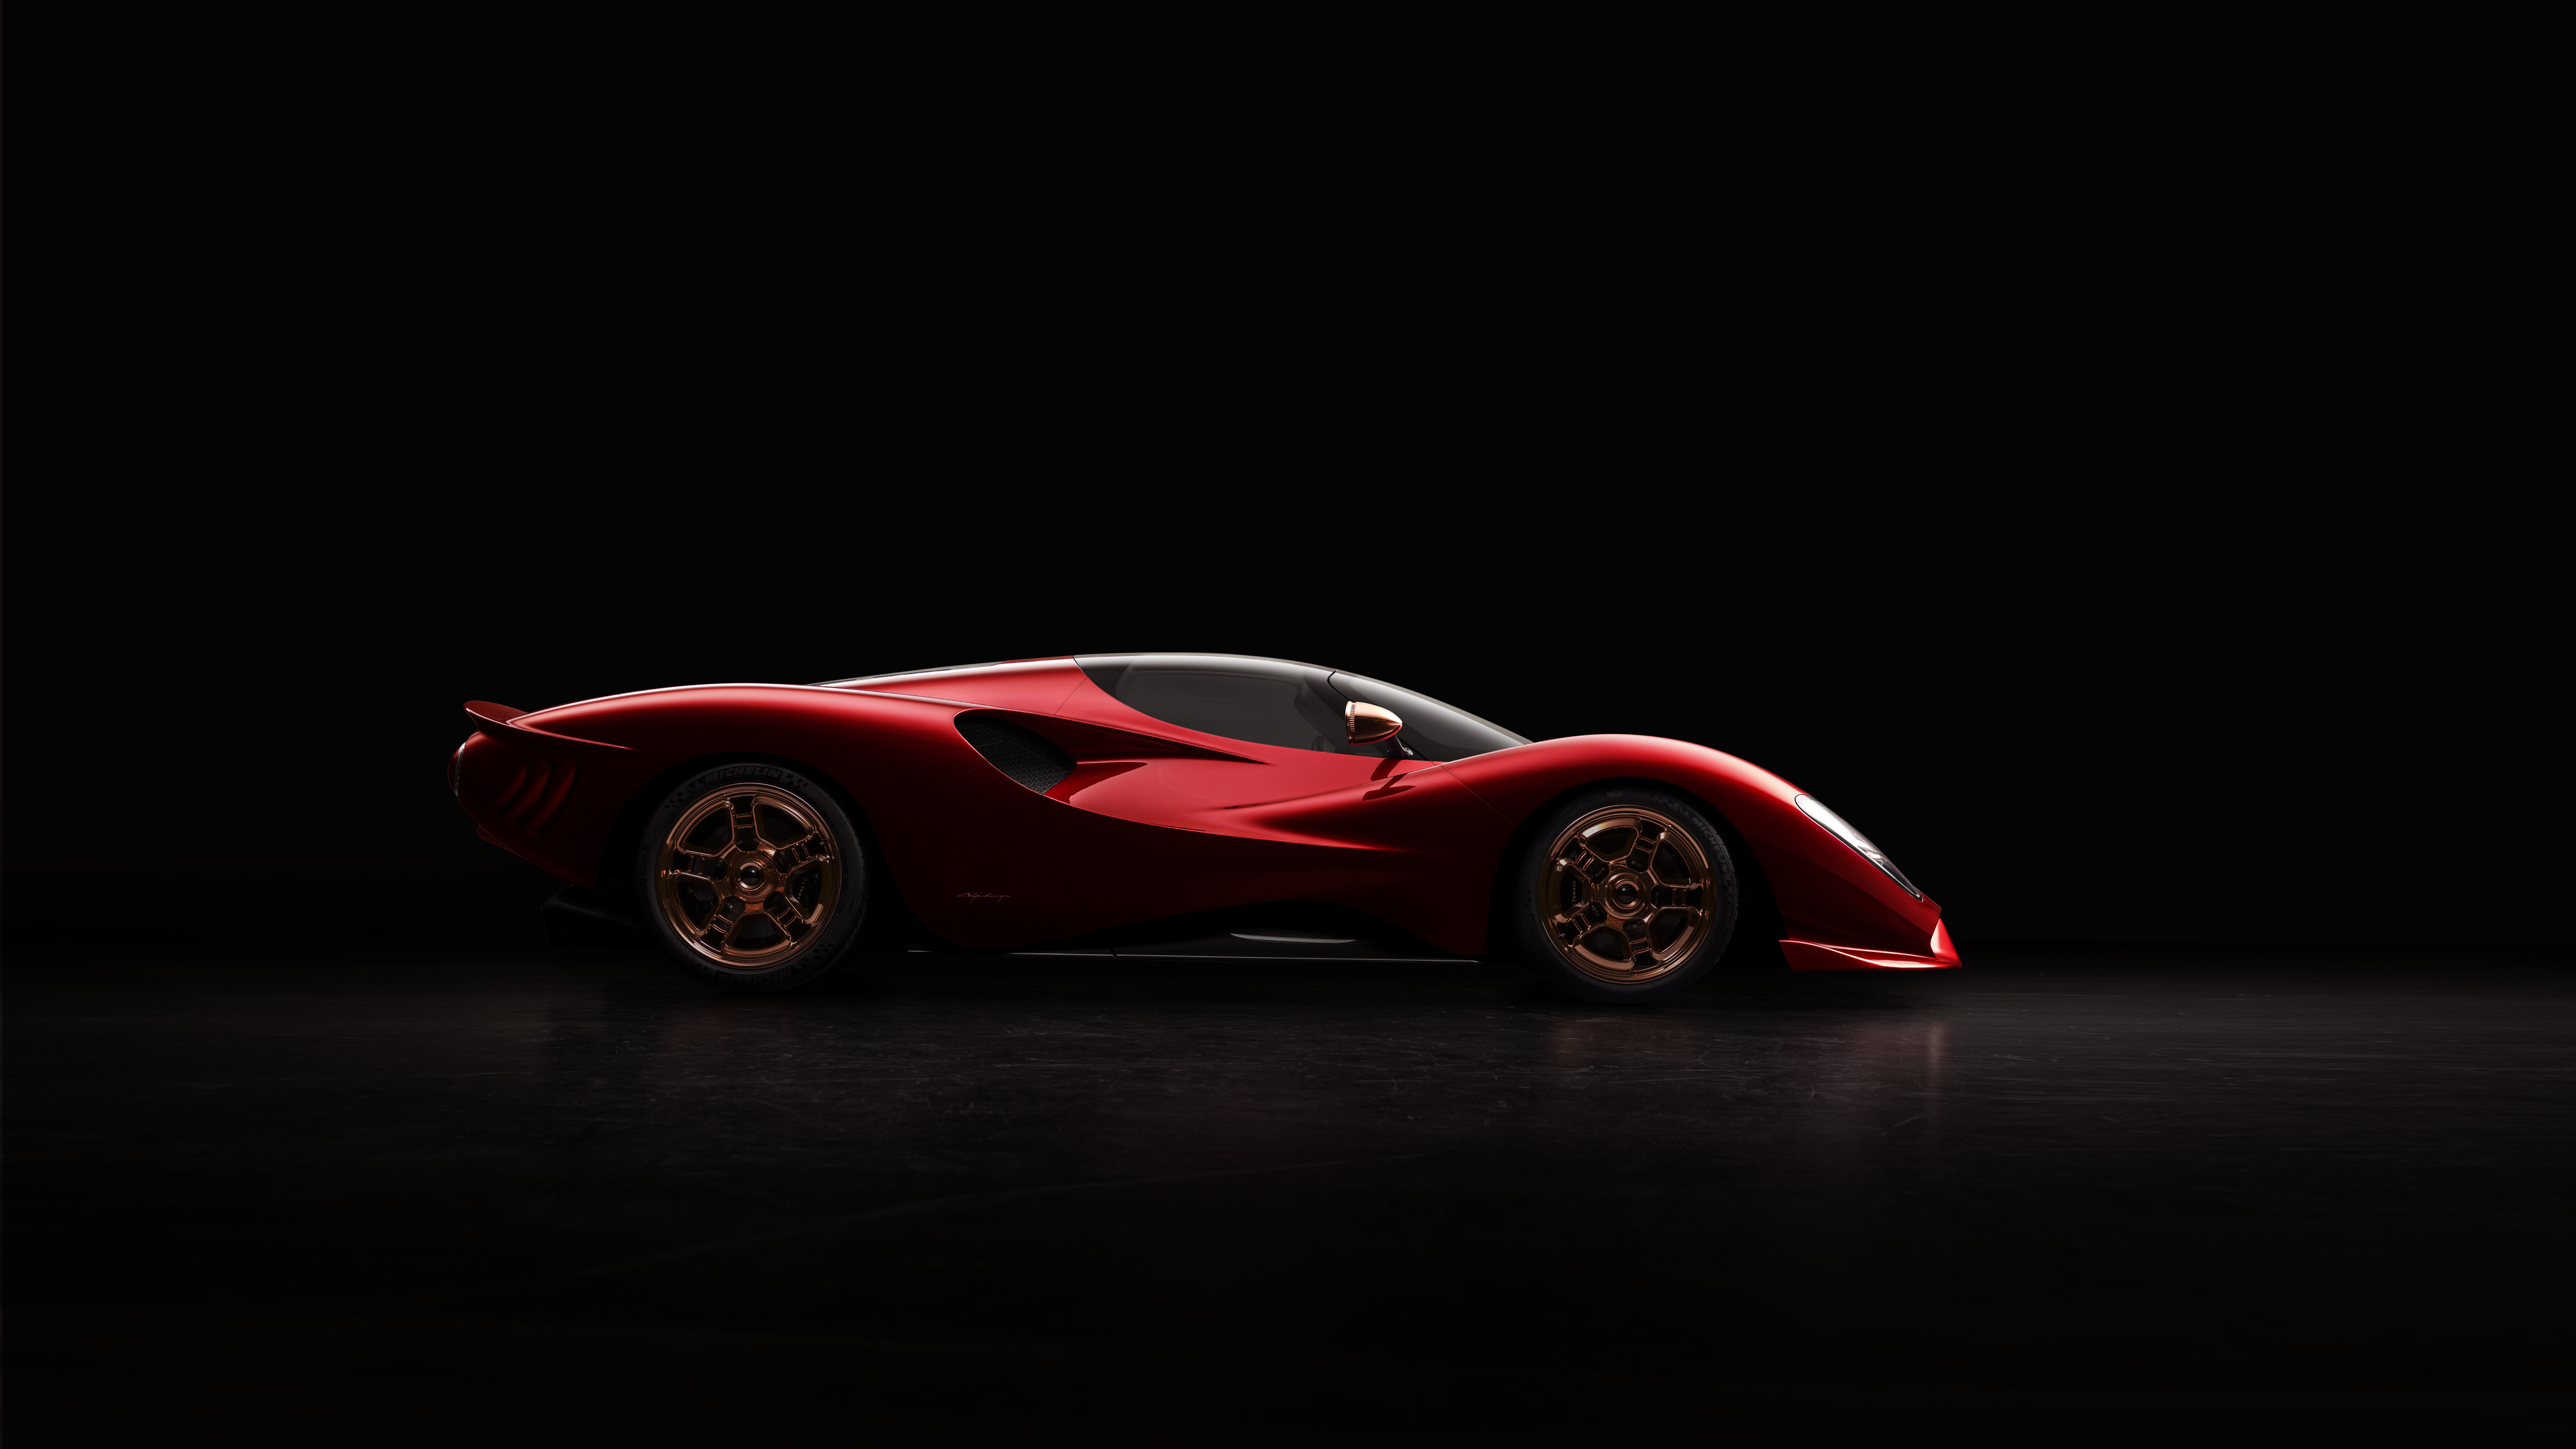 2019 de tomaso p72 side view 1563221134 - 2019 De Tomaso P72 Side View - hd-wallpapers, cars wallpapers, 8k wallpapers, 5k wallpapers, 4k-wallpapers, 2019 cars wallpapers, 10k wallpapers